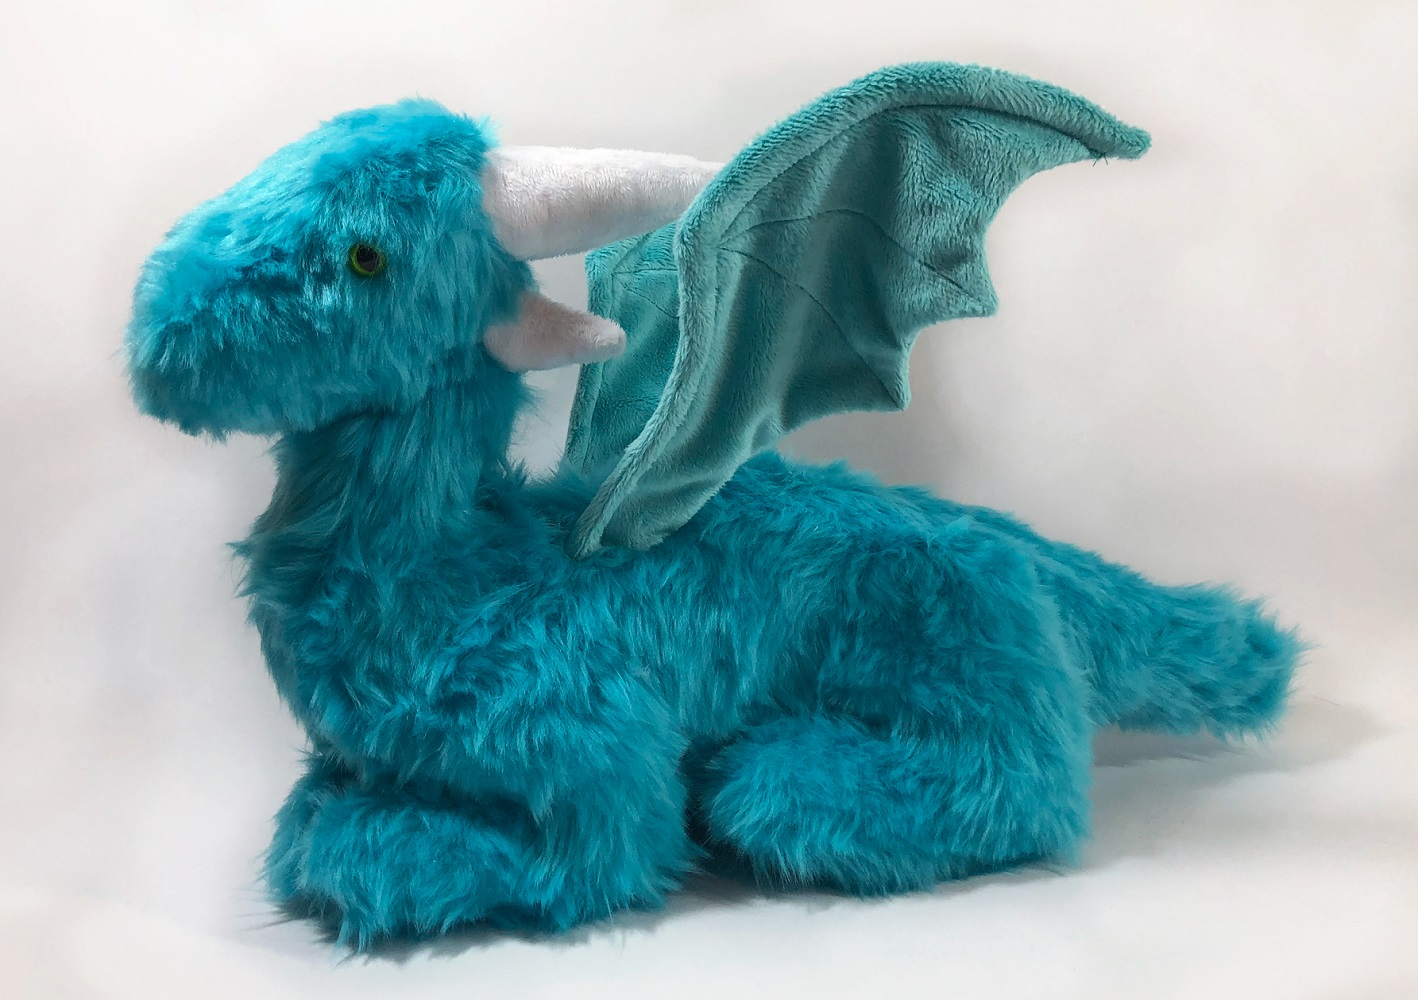 Teal faux fur dragon plush with wired wings.